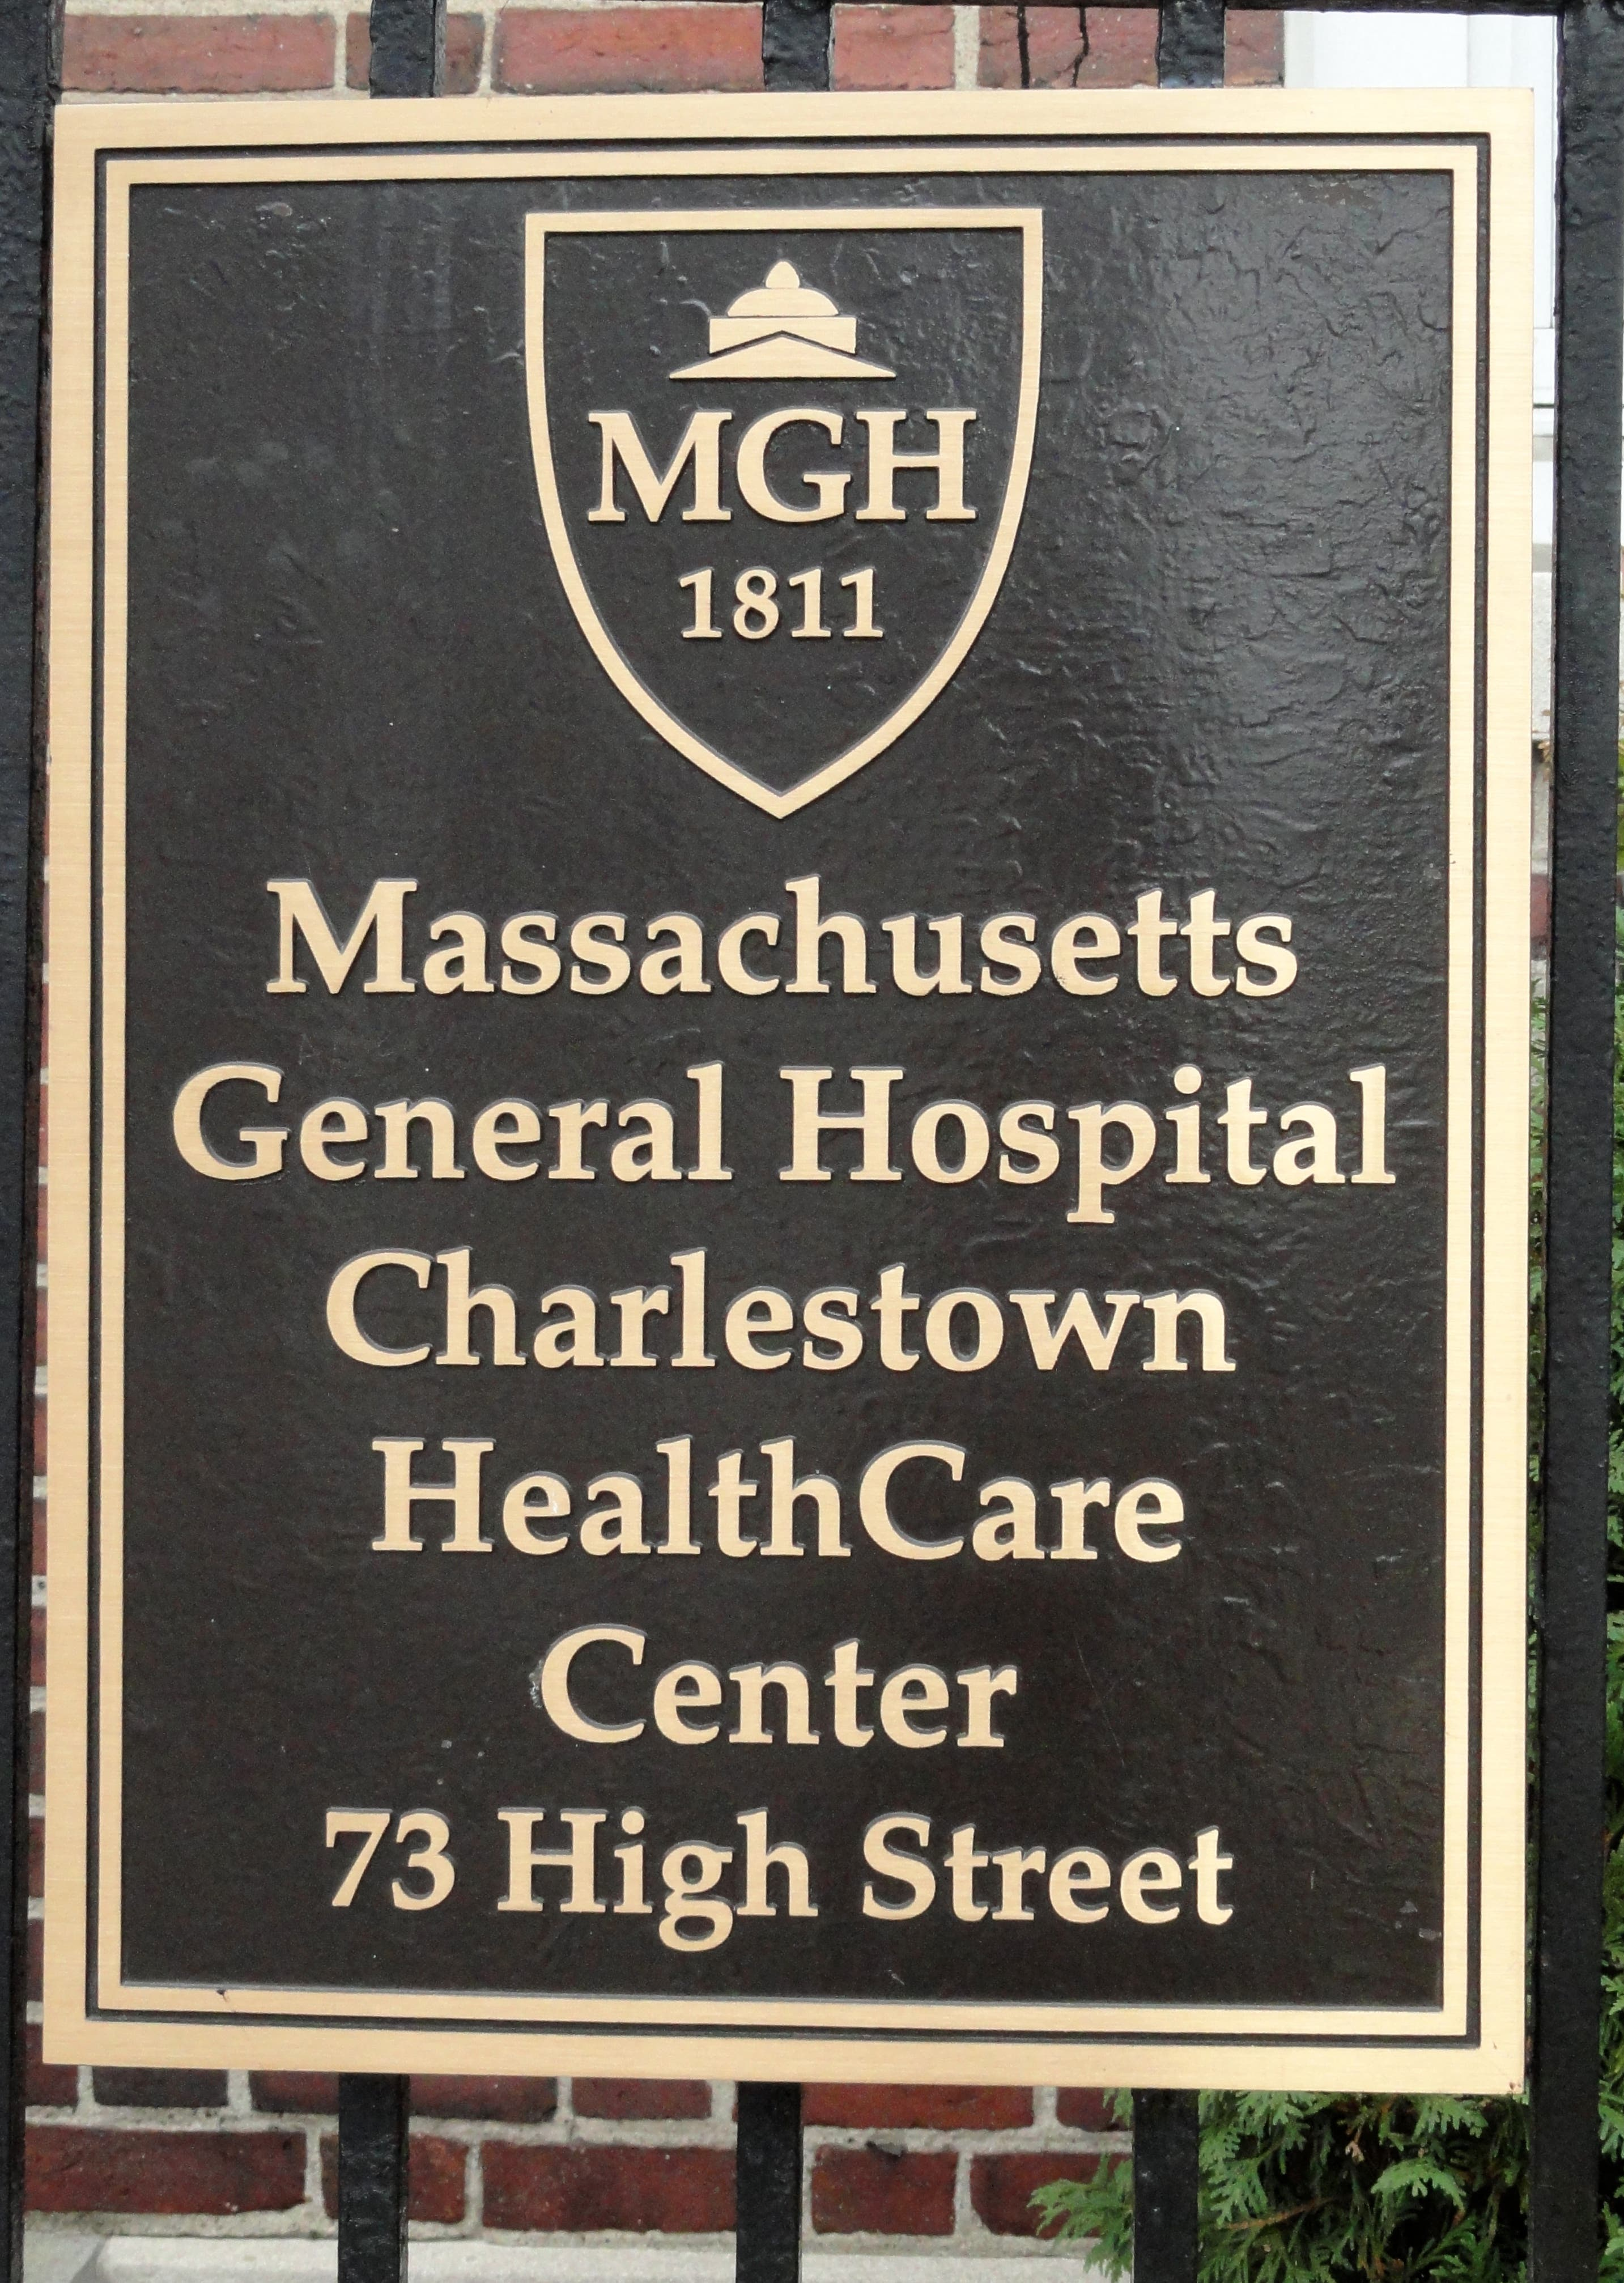 Get Your Smart Choices Application from MGH | Charlestown, MA Patch